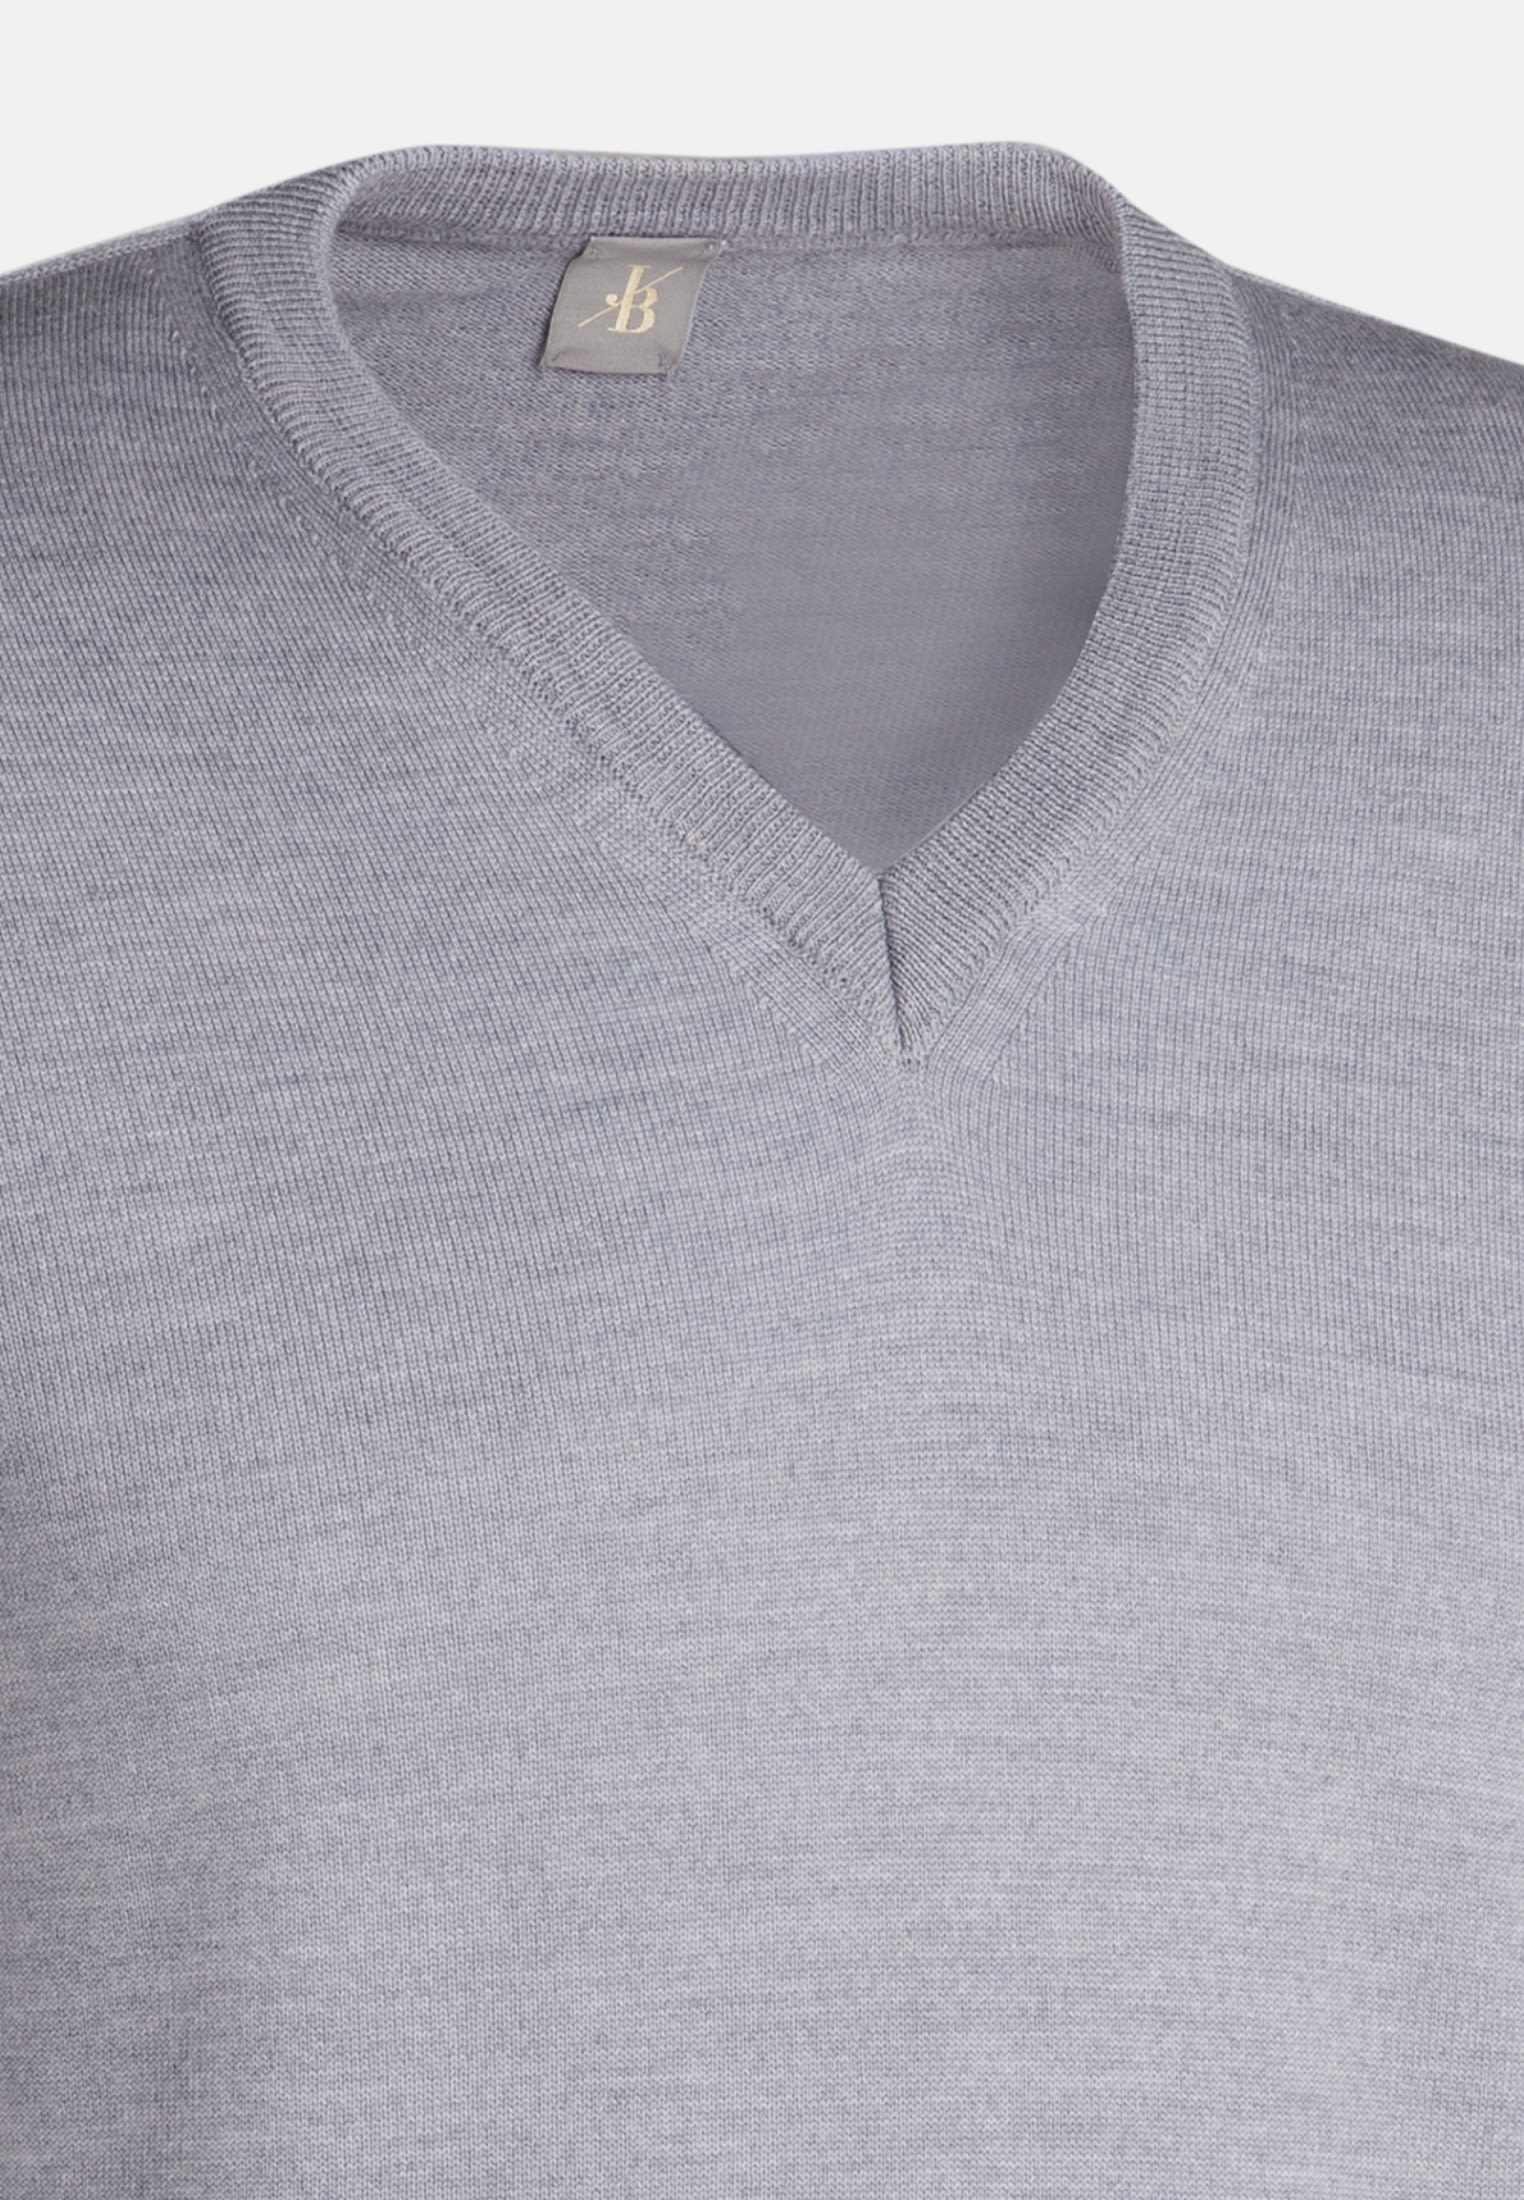 V-Neck Pullover aus 100% Merino-Wolle in Grau |  Jacques Britt Onlineshop